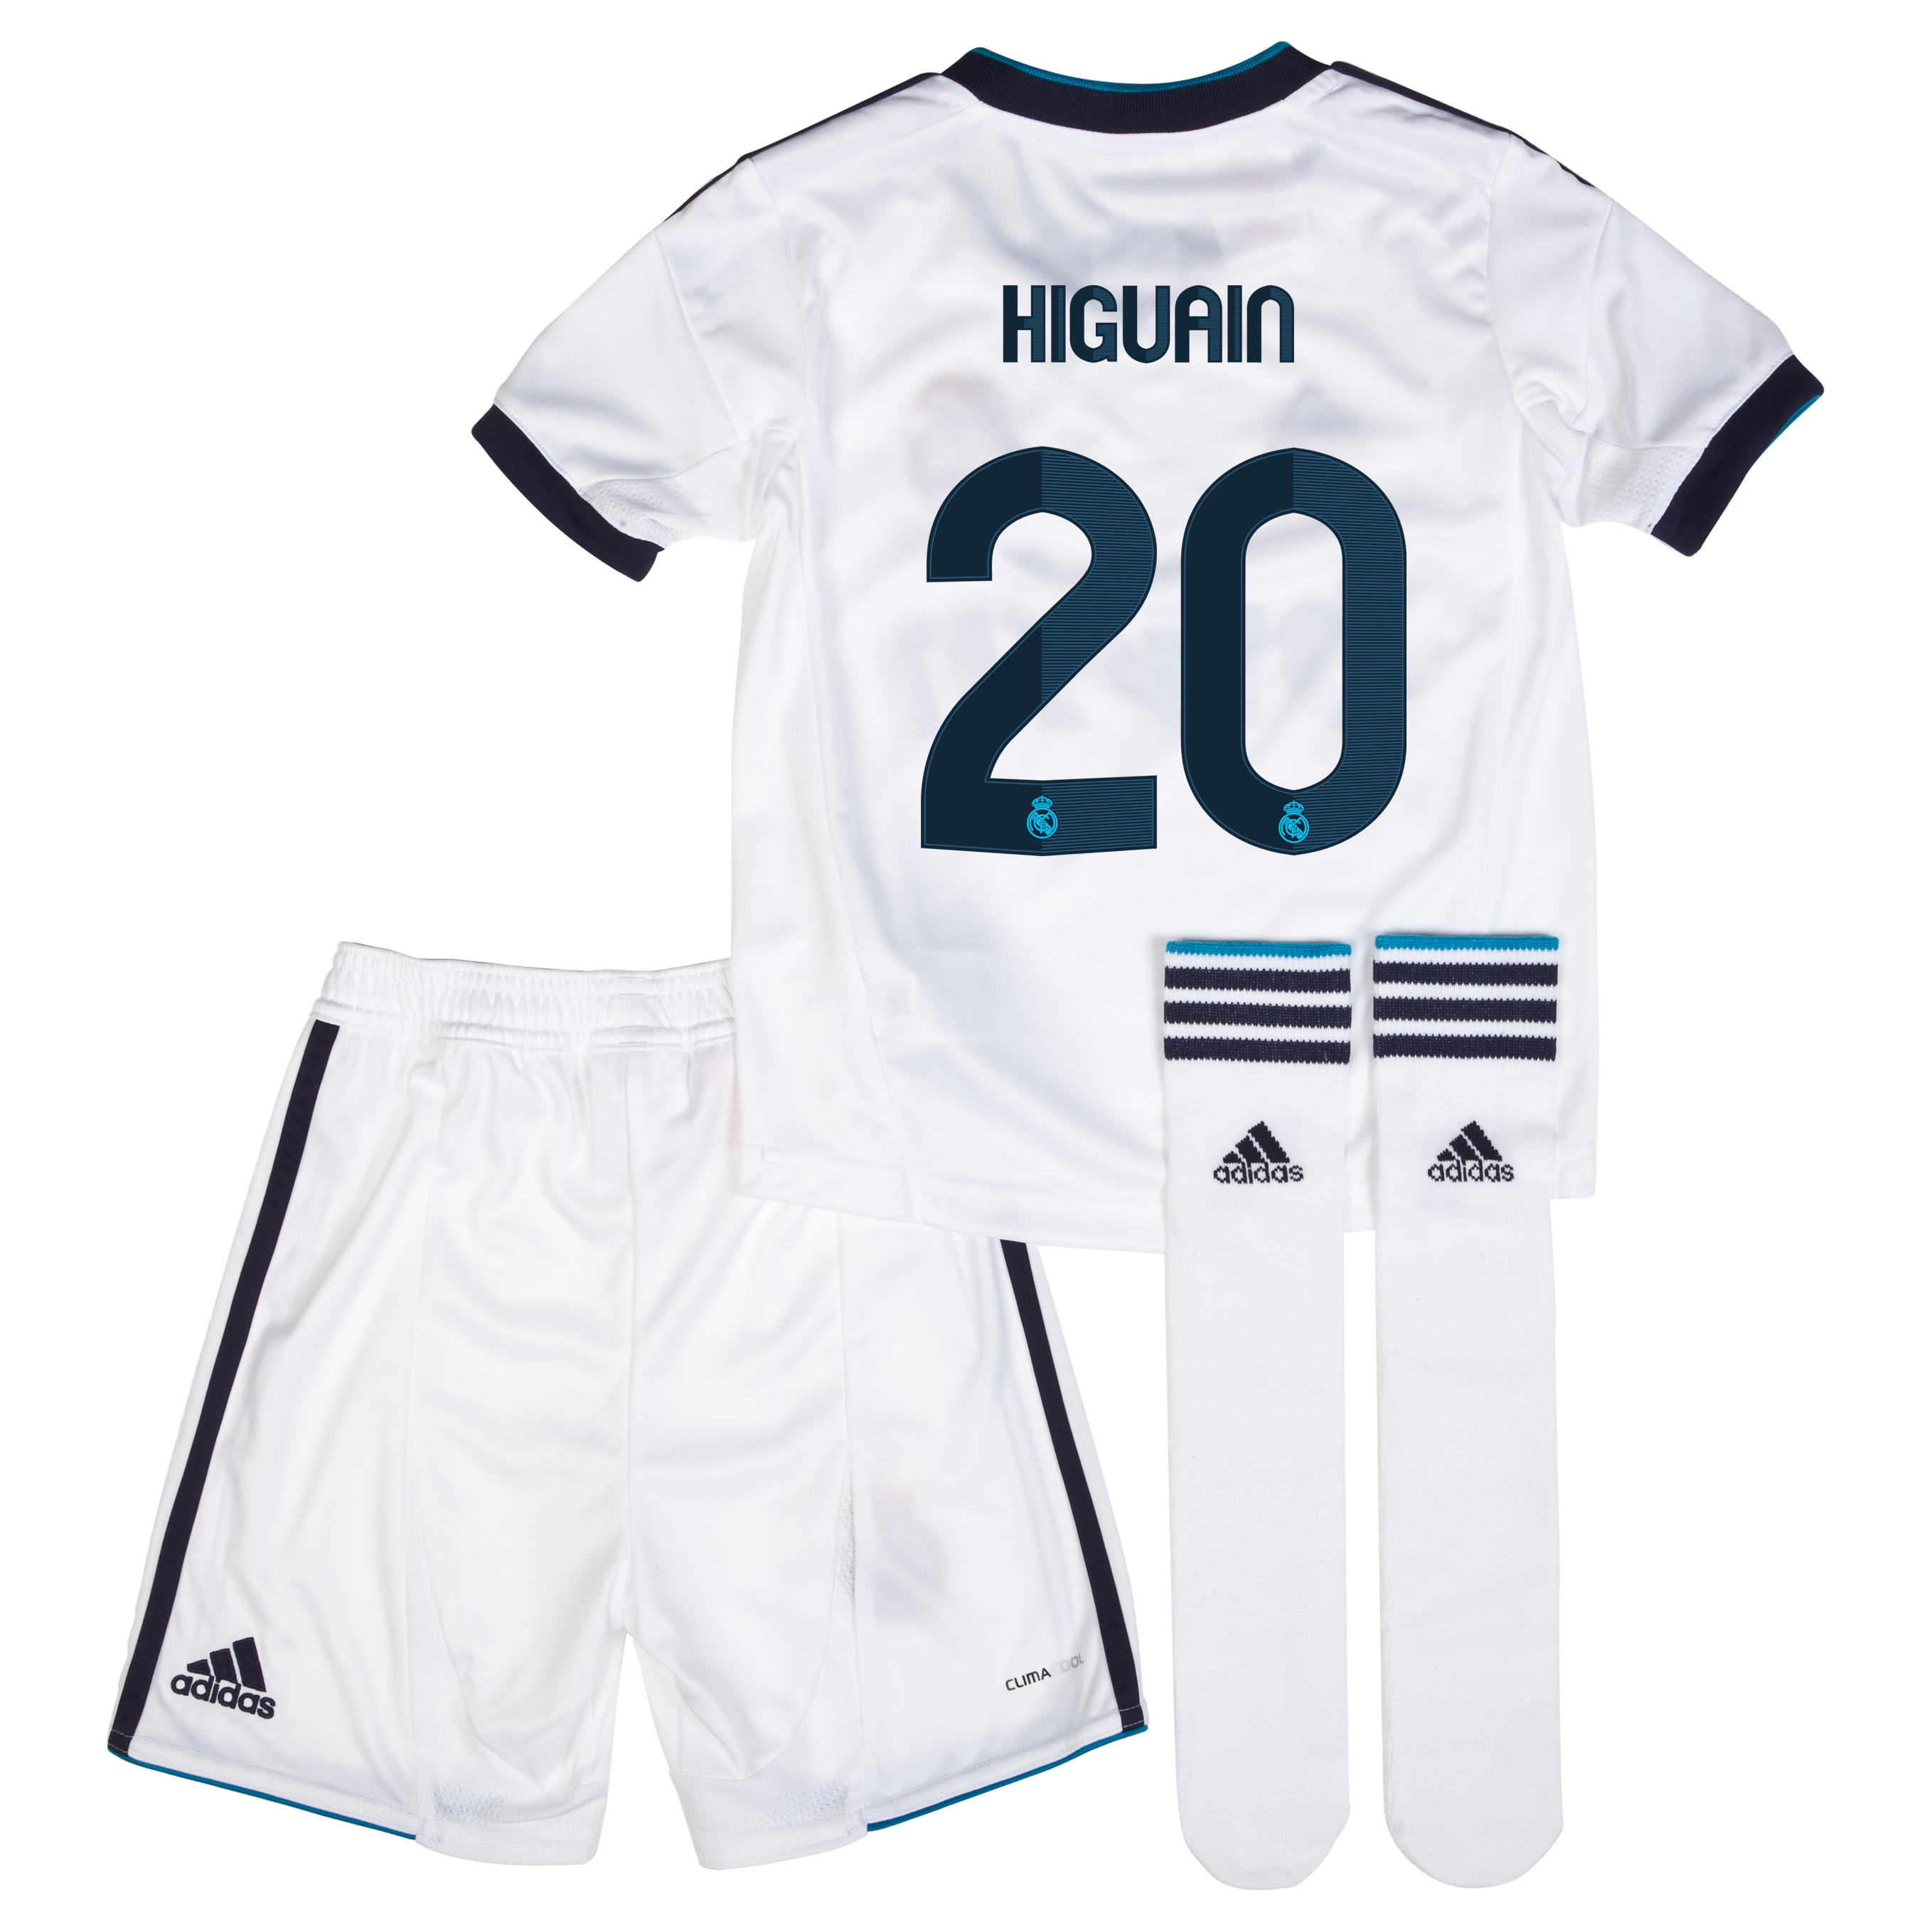 Mini kit local Real Madrid 2012/13 con impresión 20 Higuaín